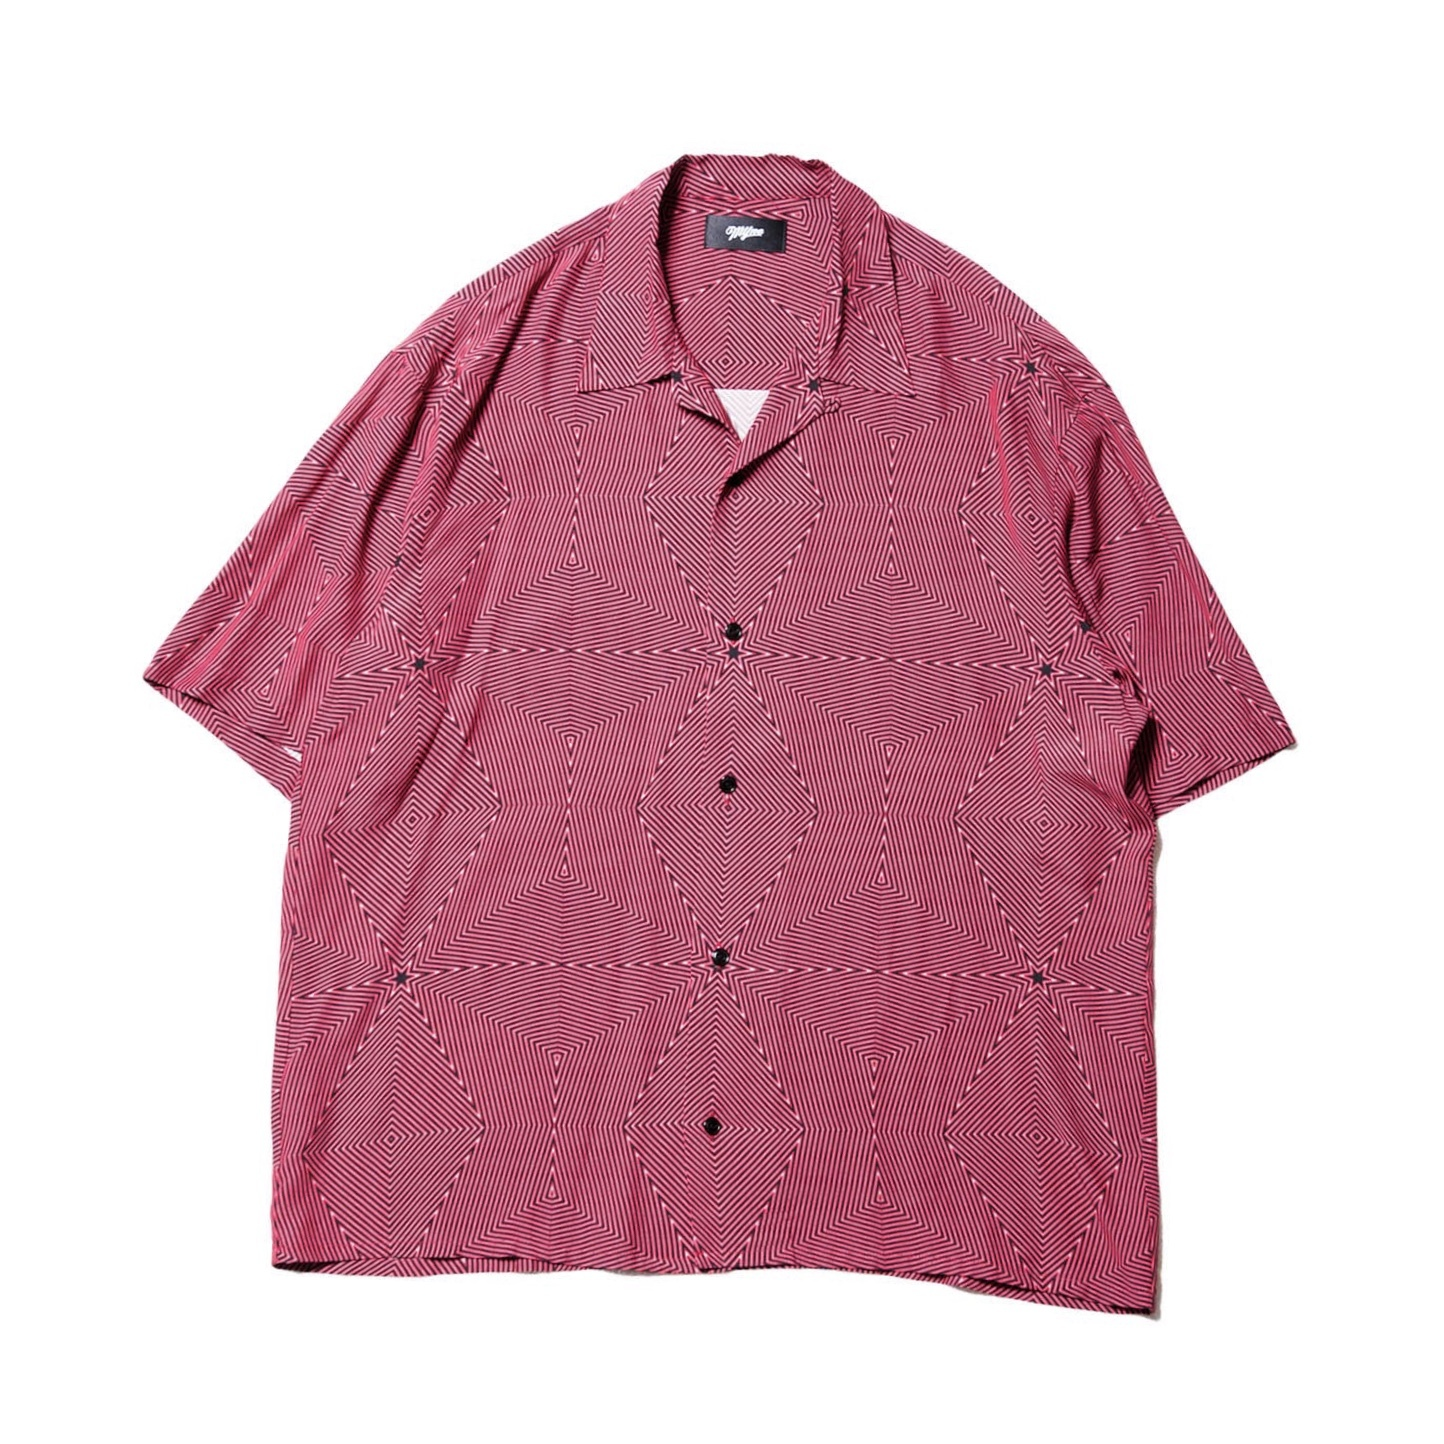 Neon half sleeve shirt / RED - 画像1